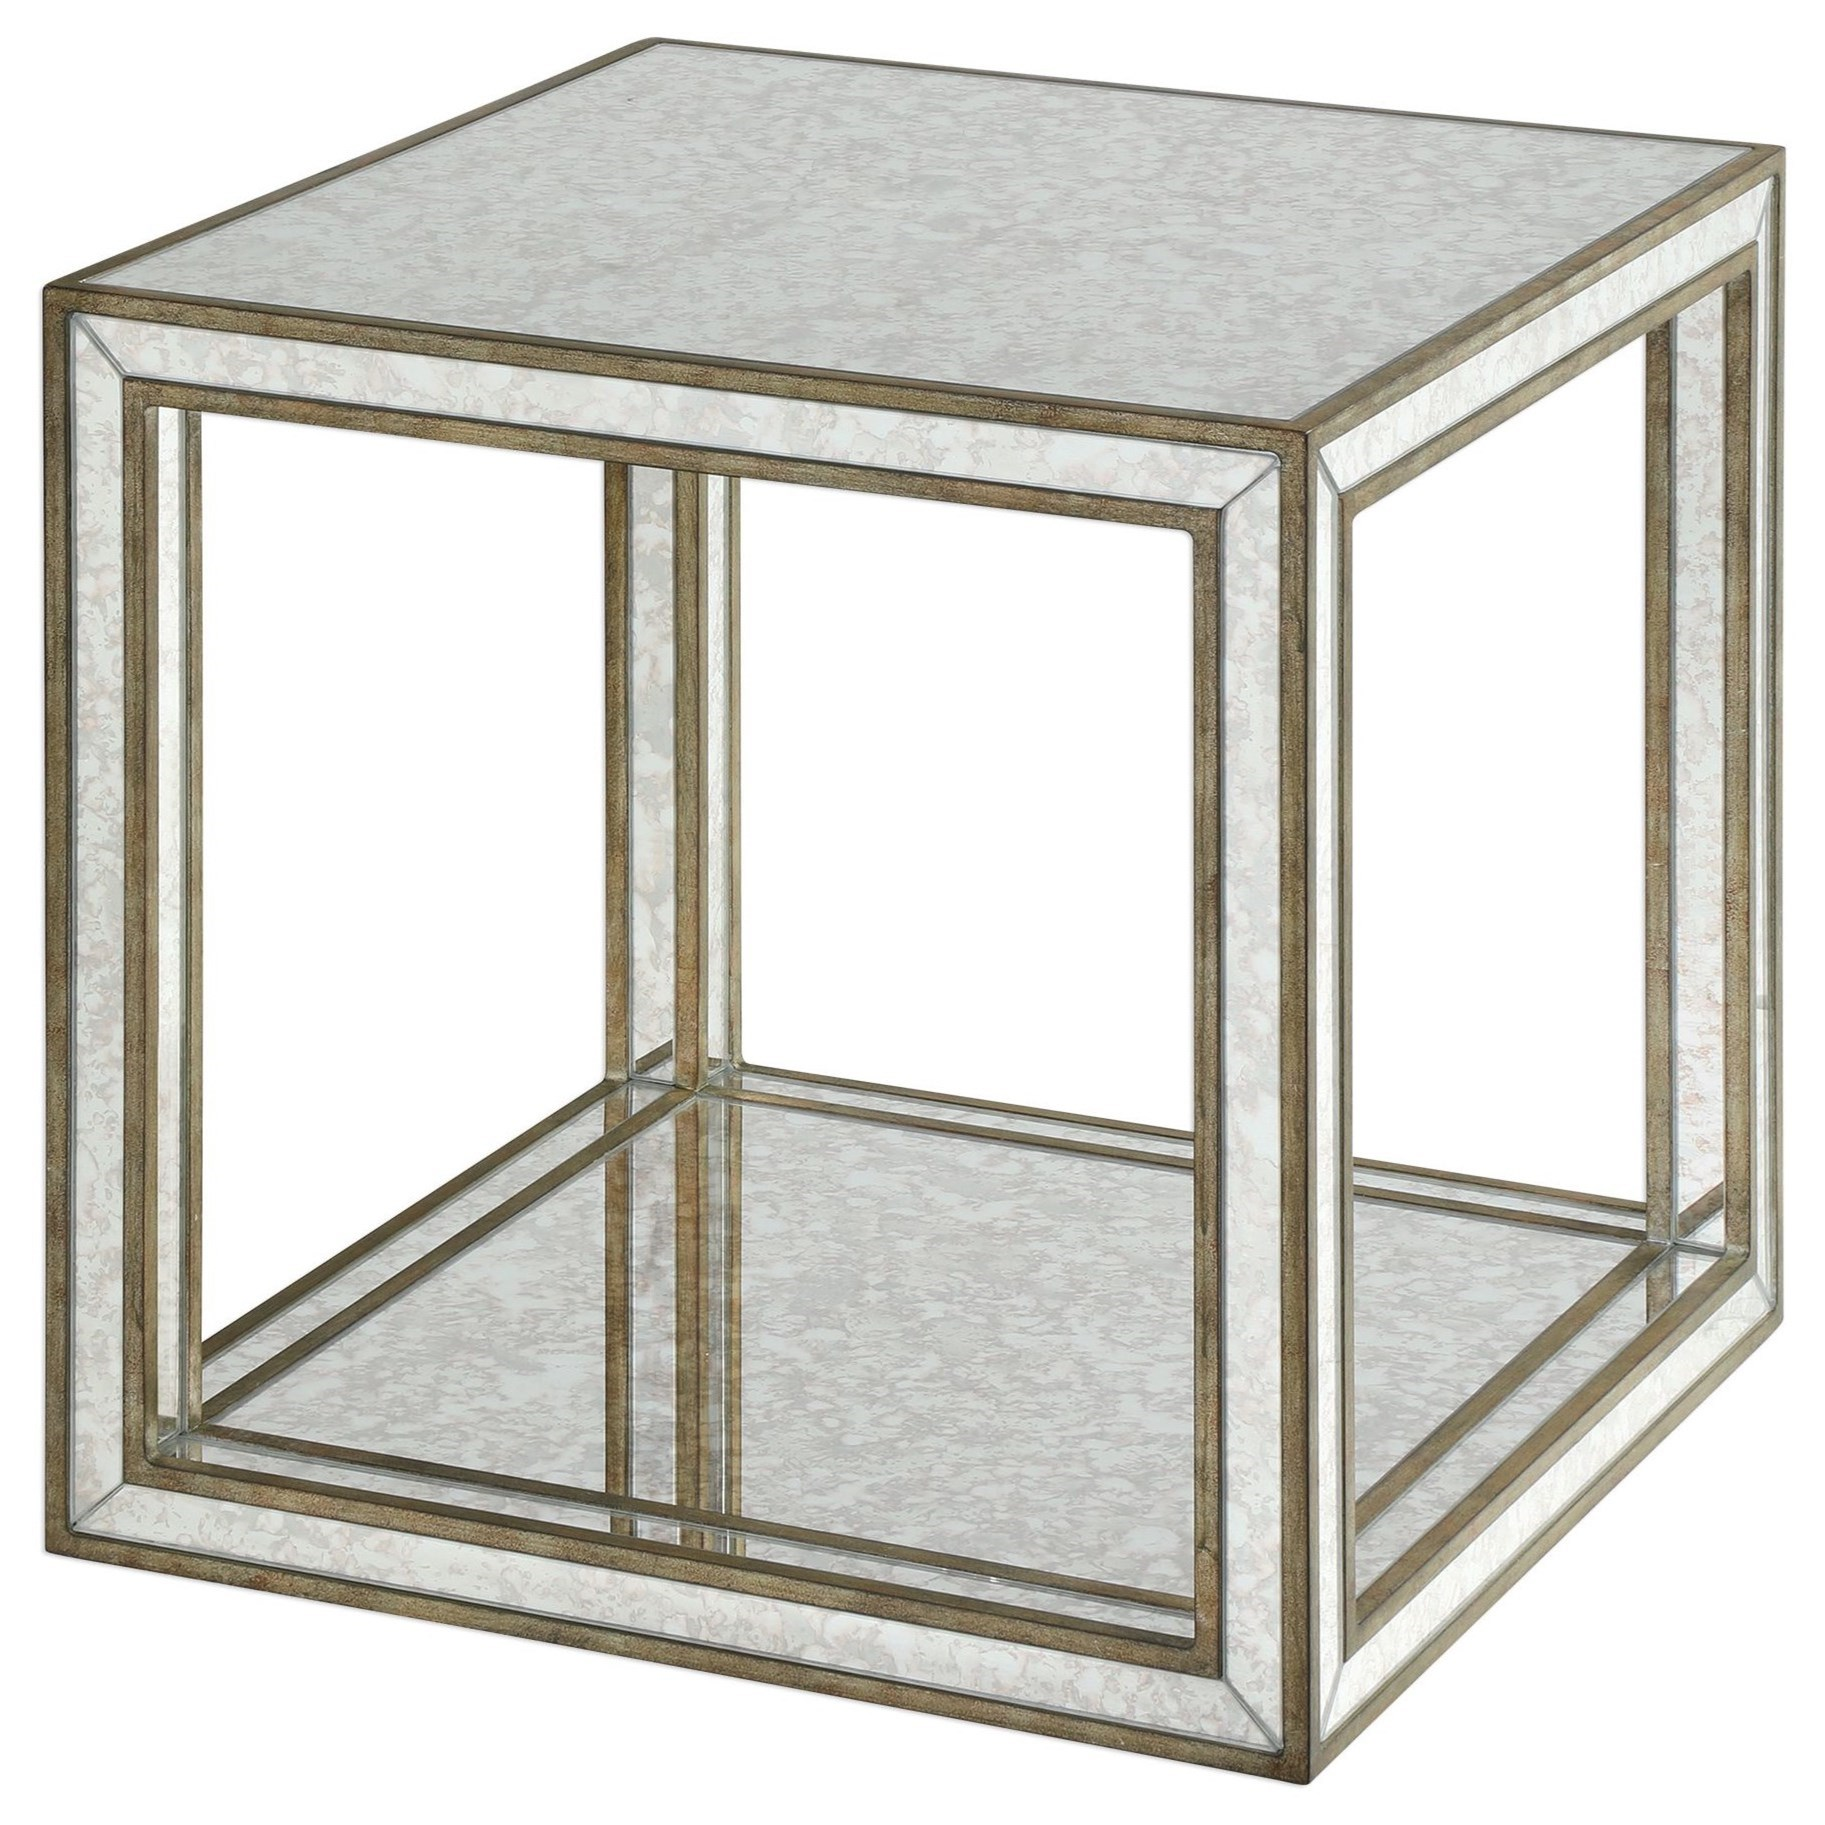 Accent Furniture - Occasional Tables Julie Mirrored Accent Table by Uttermost at Factory Direct Furniture